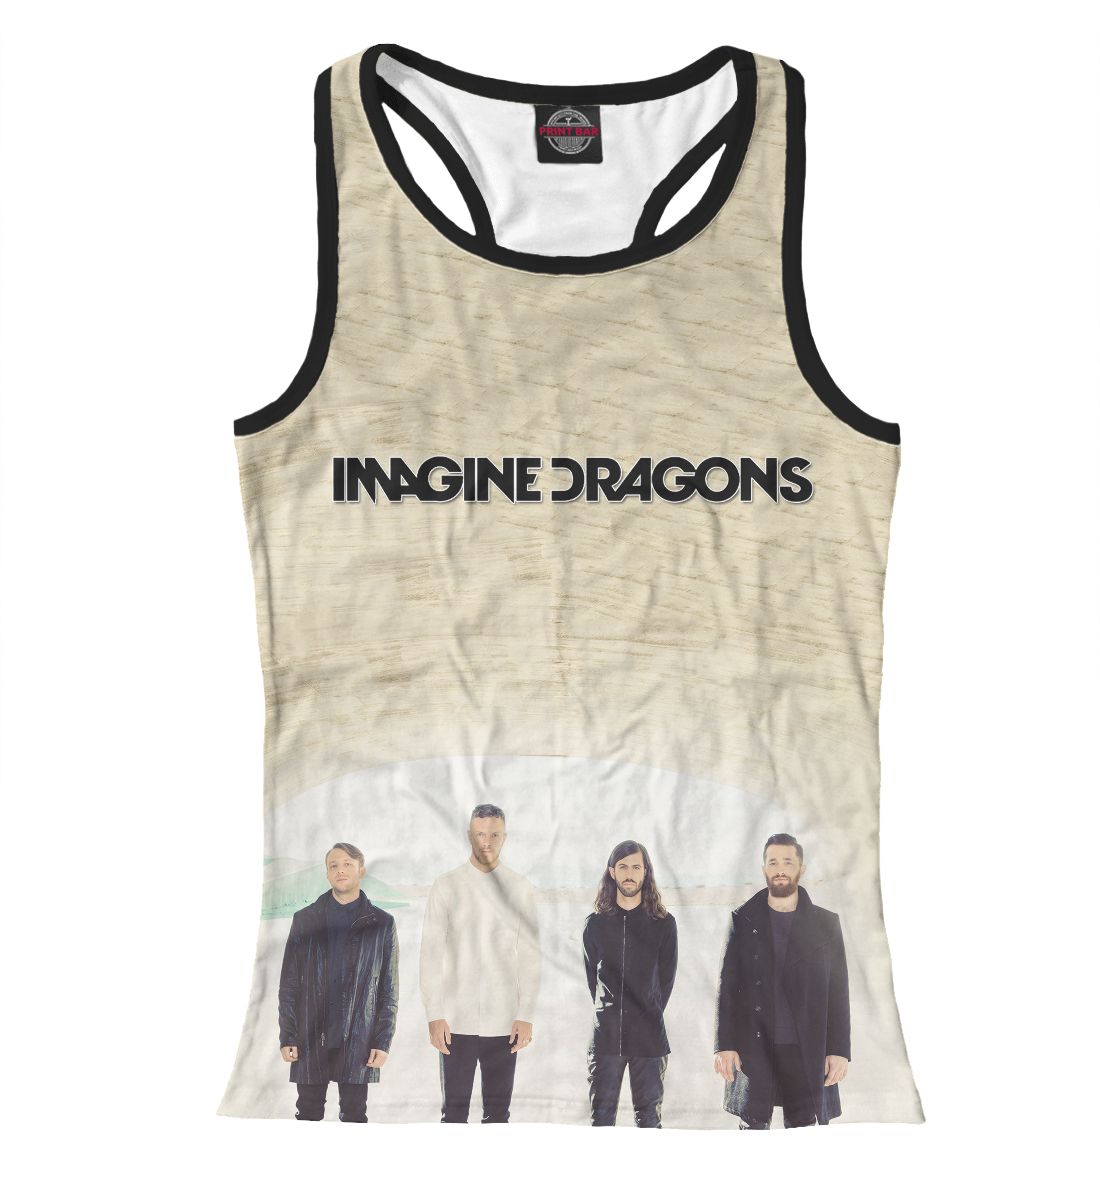 Купить Imagine Dragons, Printbar, Майки борцовки, IMA-431668-mayb-1